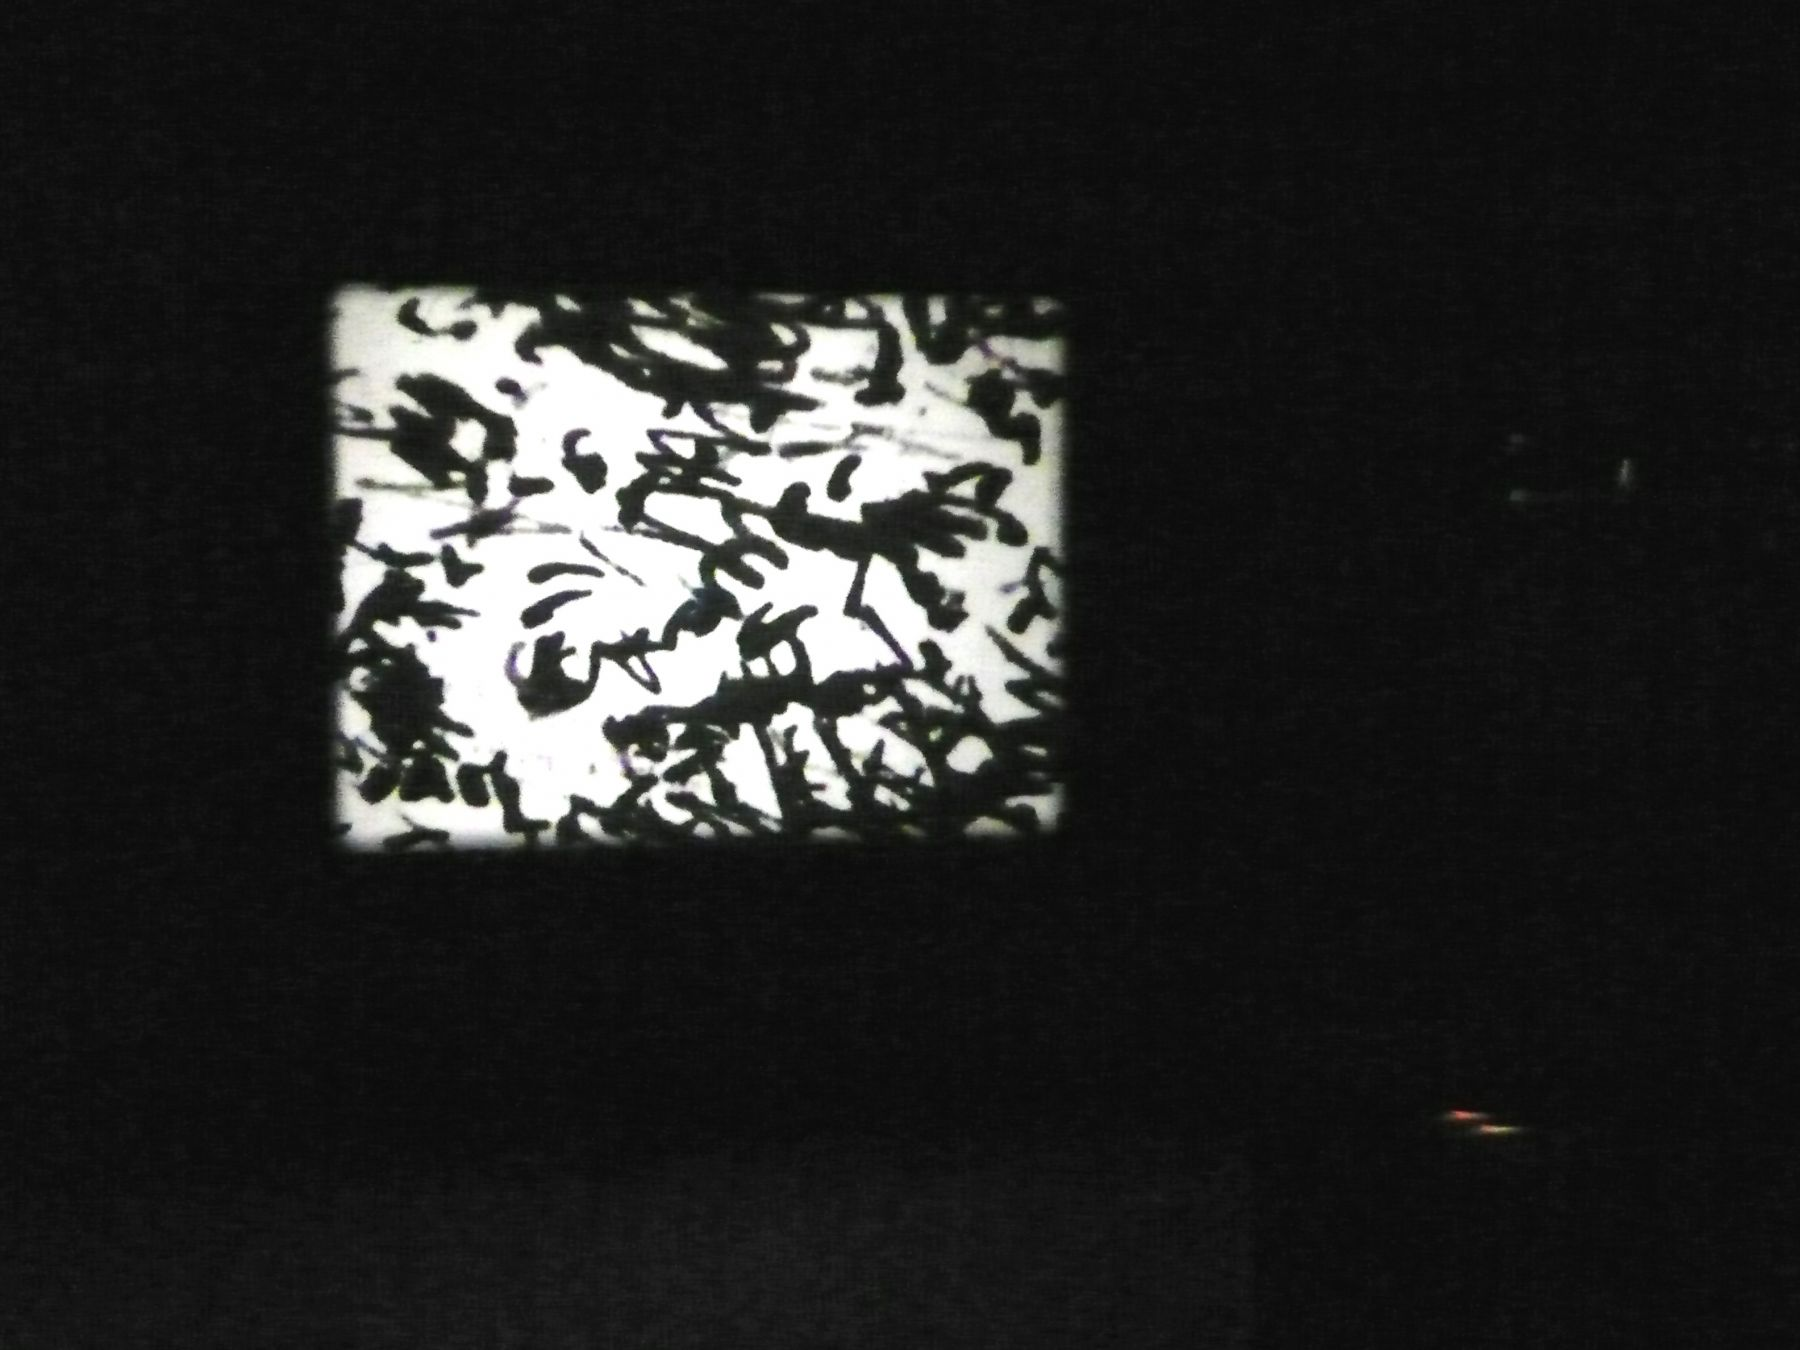 My Frontier is an Endless Wall of Points (after the mescaline drawings of Henri Michaux), 2007, 16mm black and white film, 10:24 minutes, continuous loop, Installation view, Greene Naftali, New York, 2010